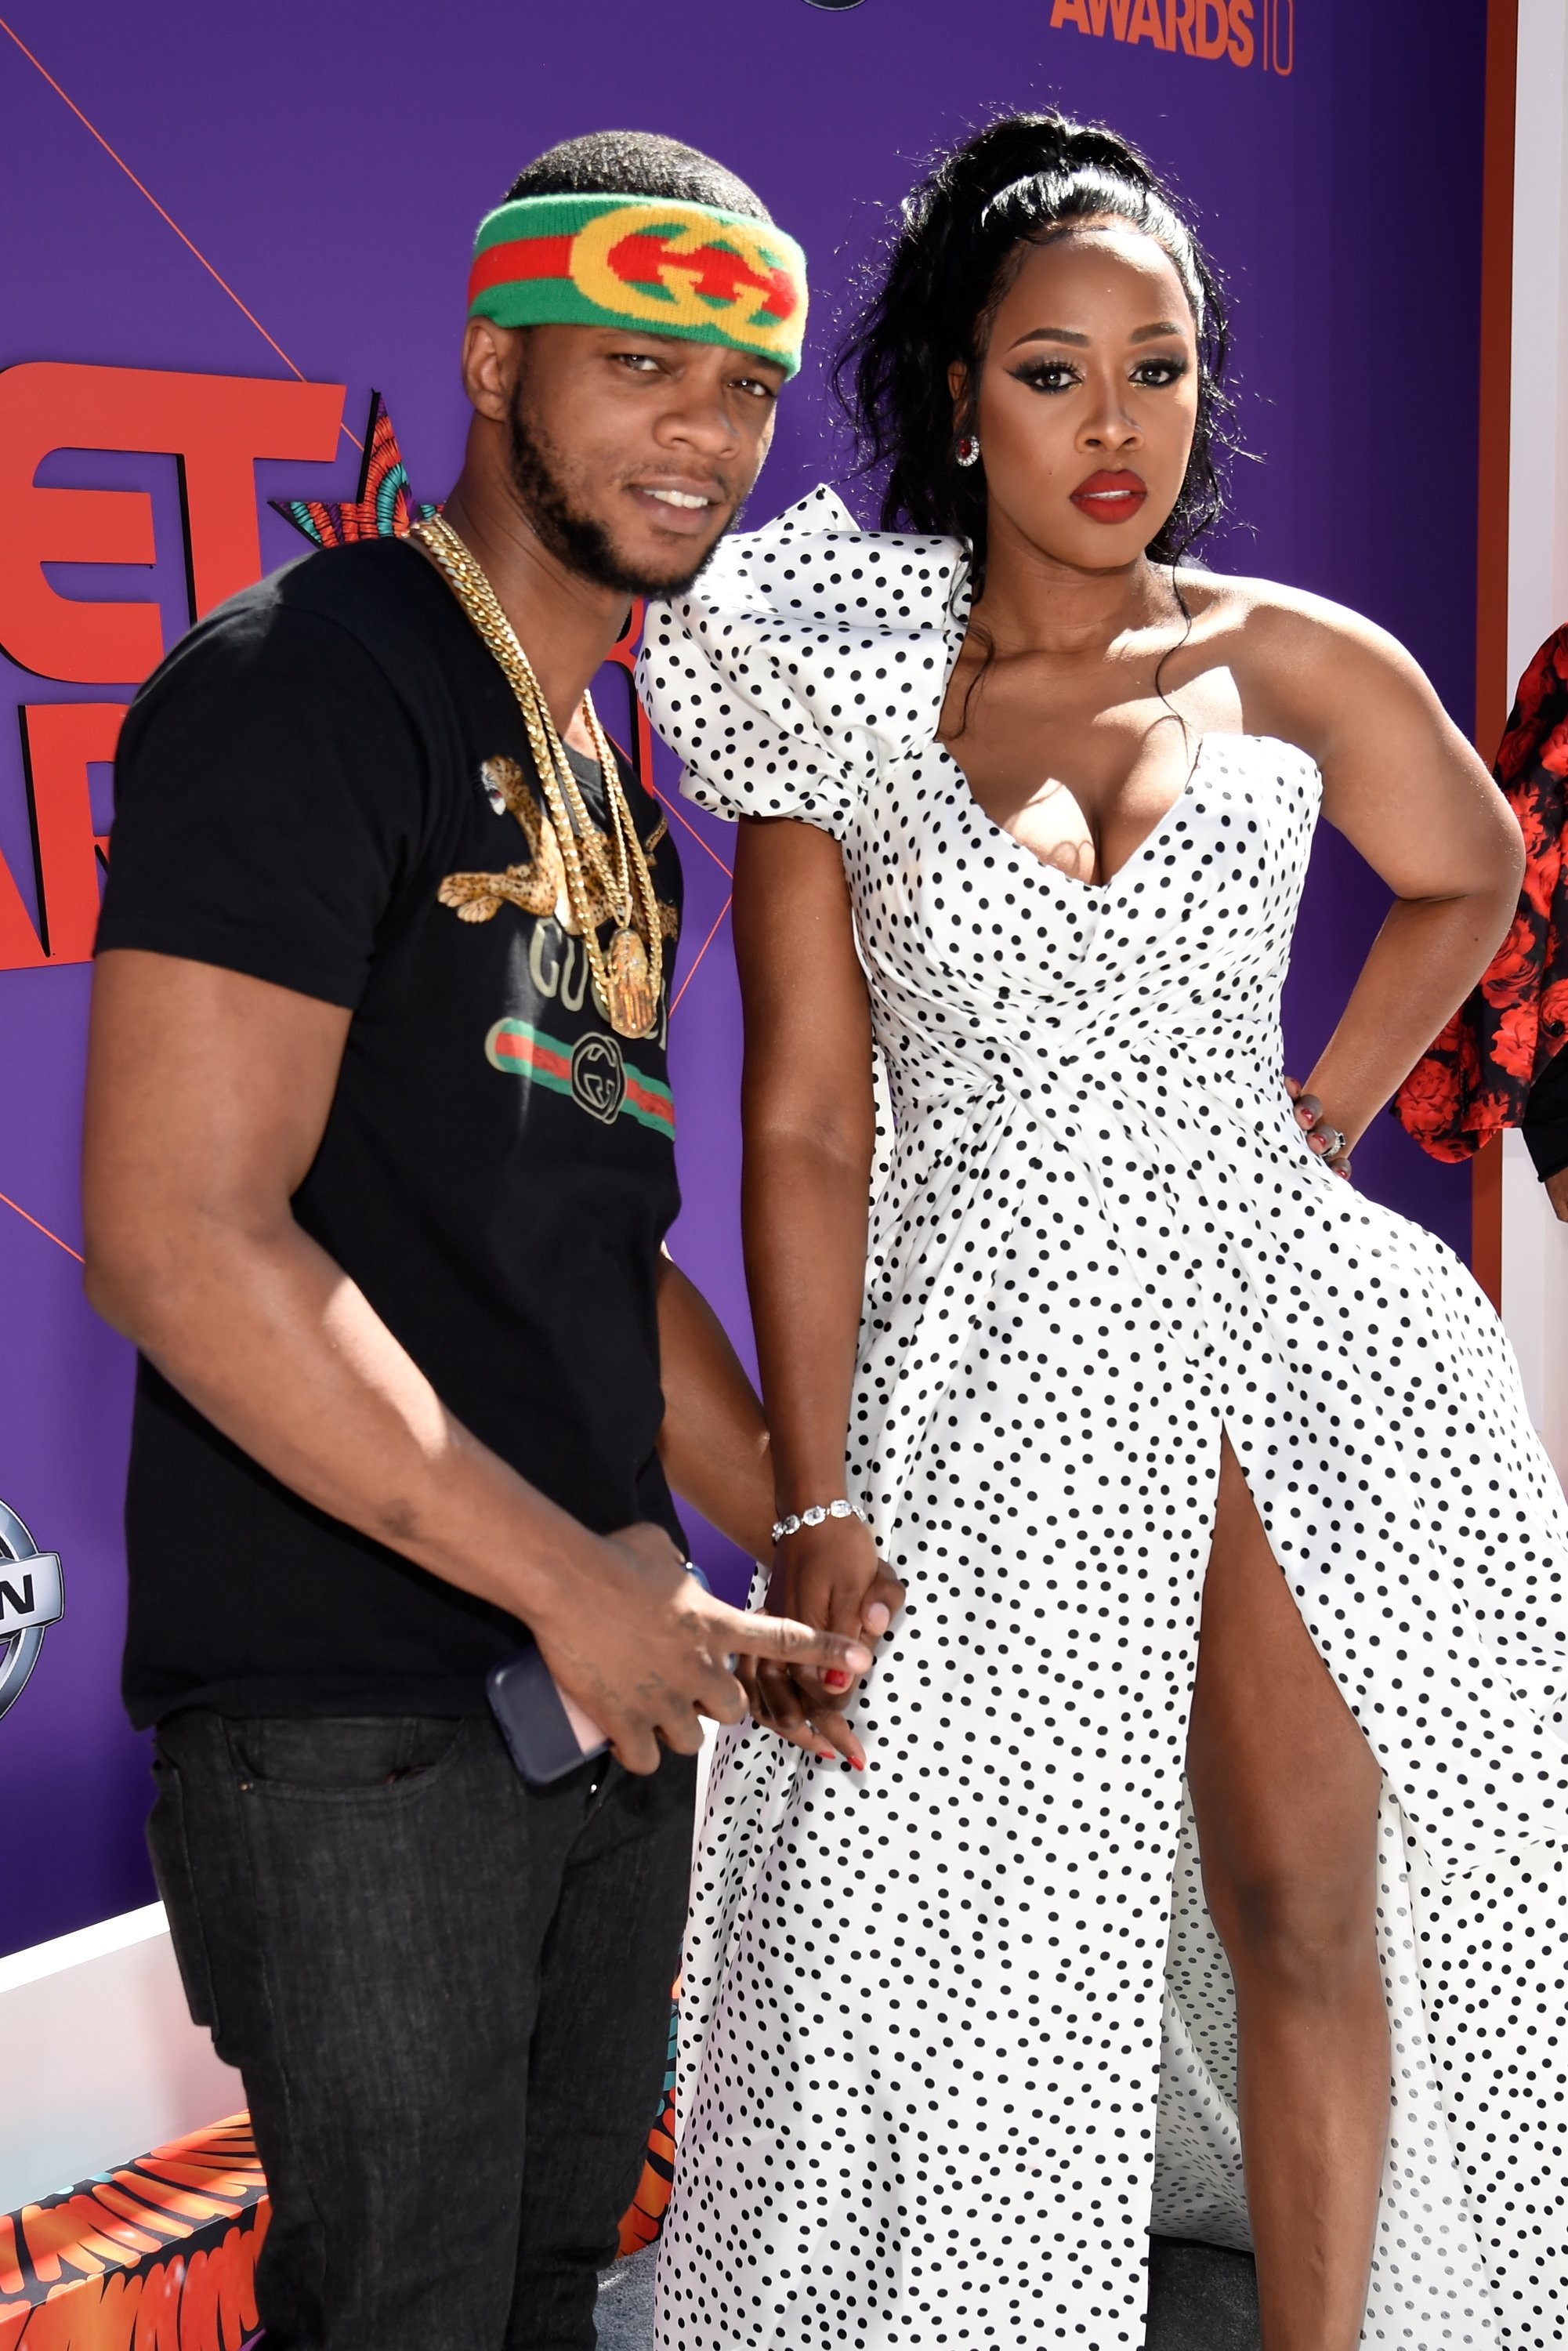 Papoose and Remy Ma at the 2018 BET Awards at Microsoft Theater on June 24, 2018 in Los Angeles, California.|Source: Getty Images